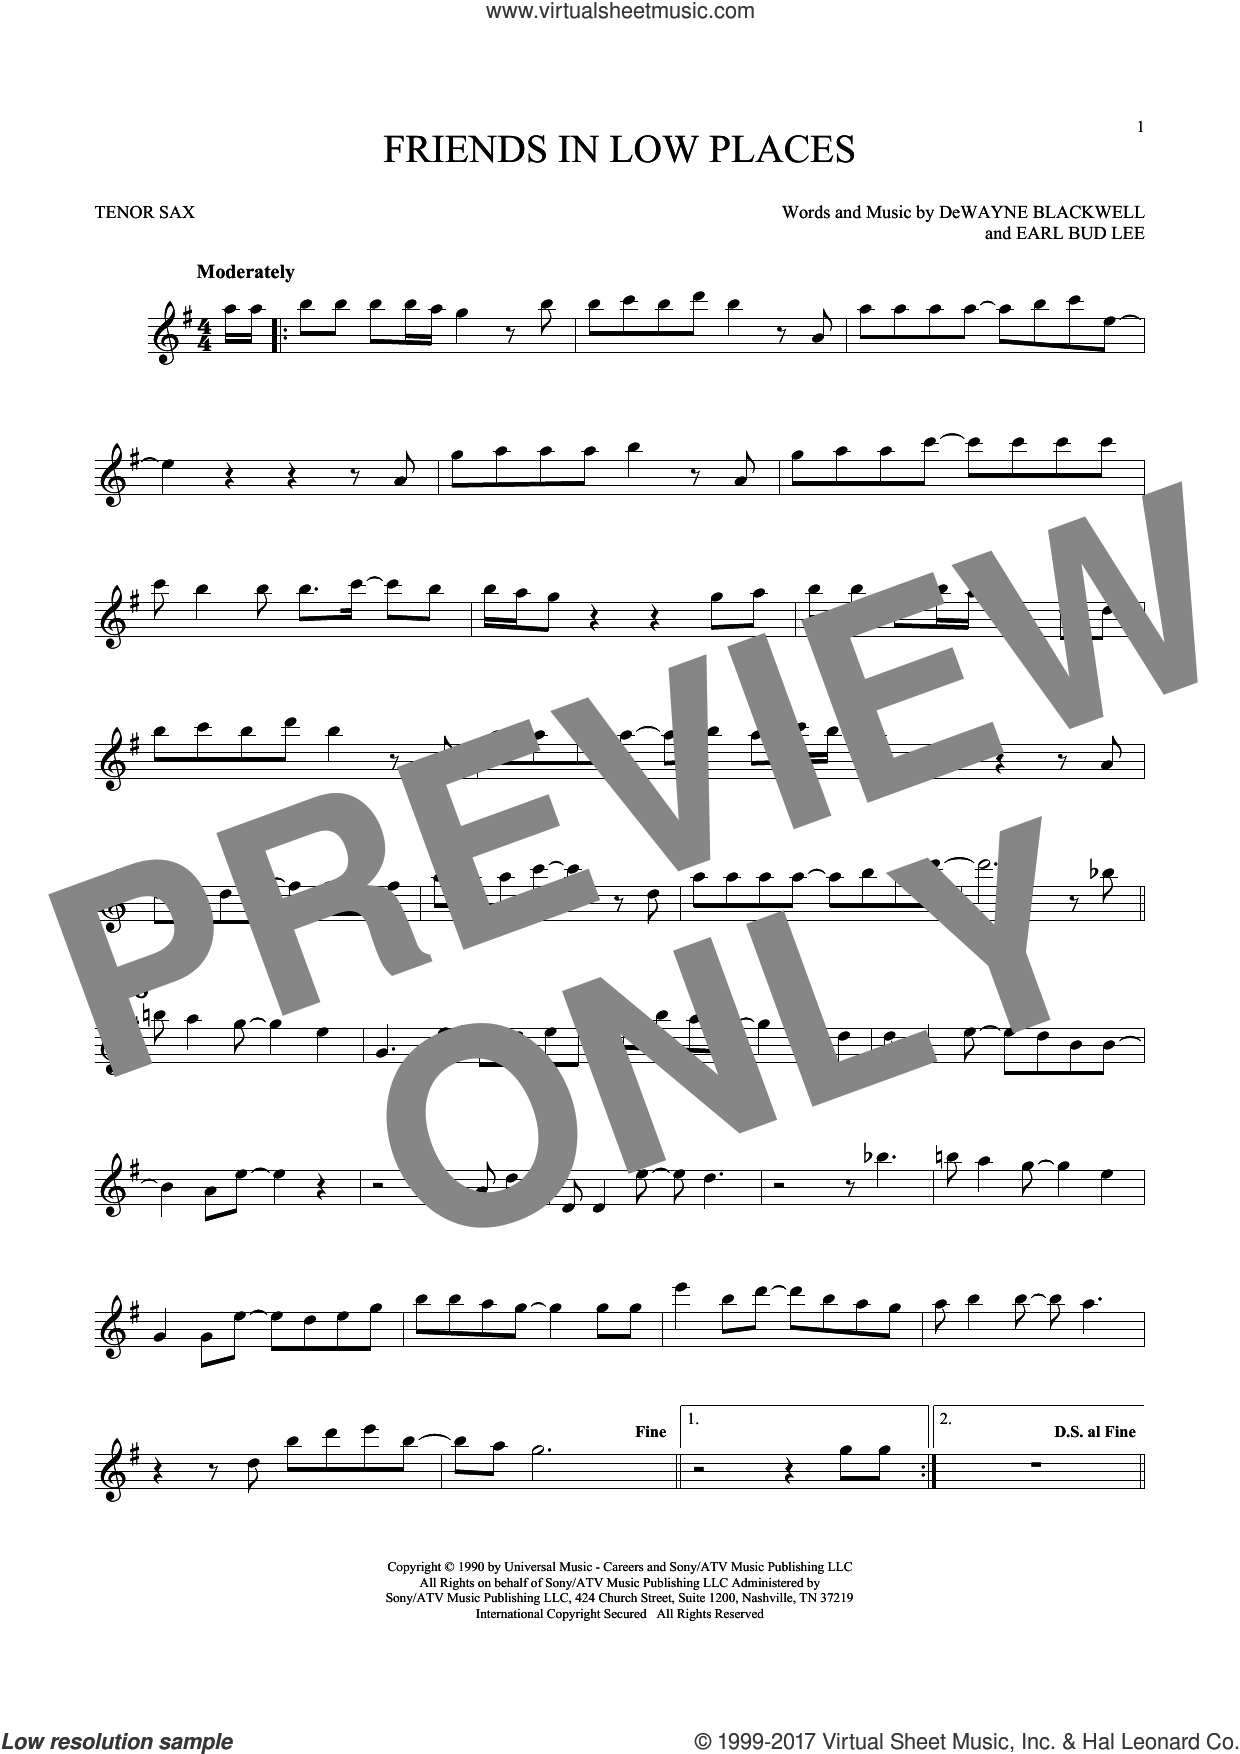 Friends In Low Places sheet music for tenor saxophone solo ( Sax) by Garth Brooks, DeWayne Blackwell and Earl Bud Lee, intermediate tenor saxophone ( Sax)